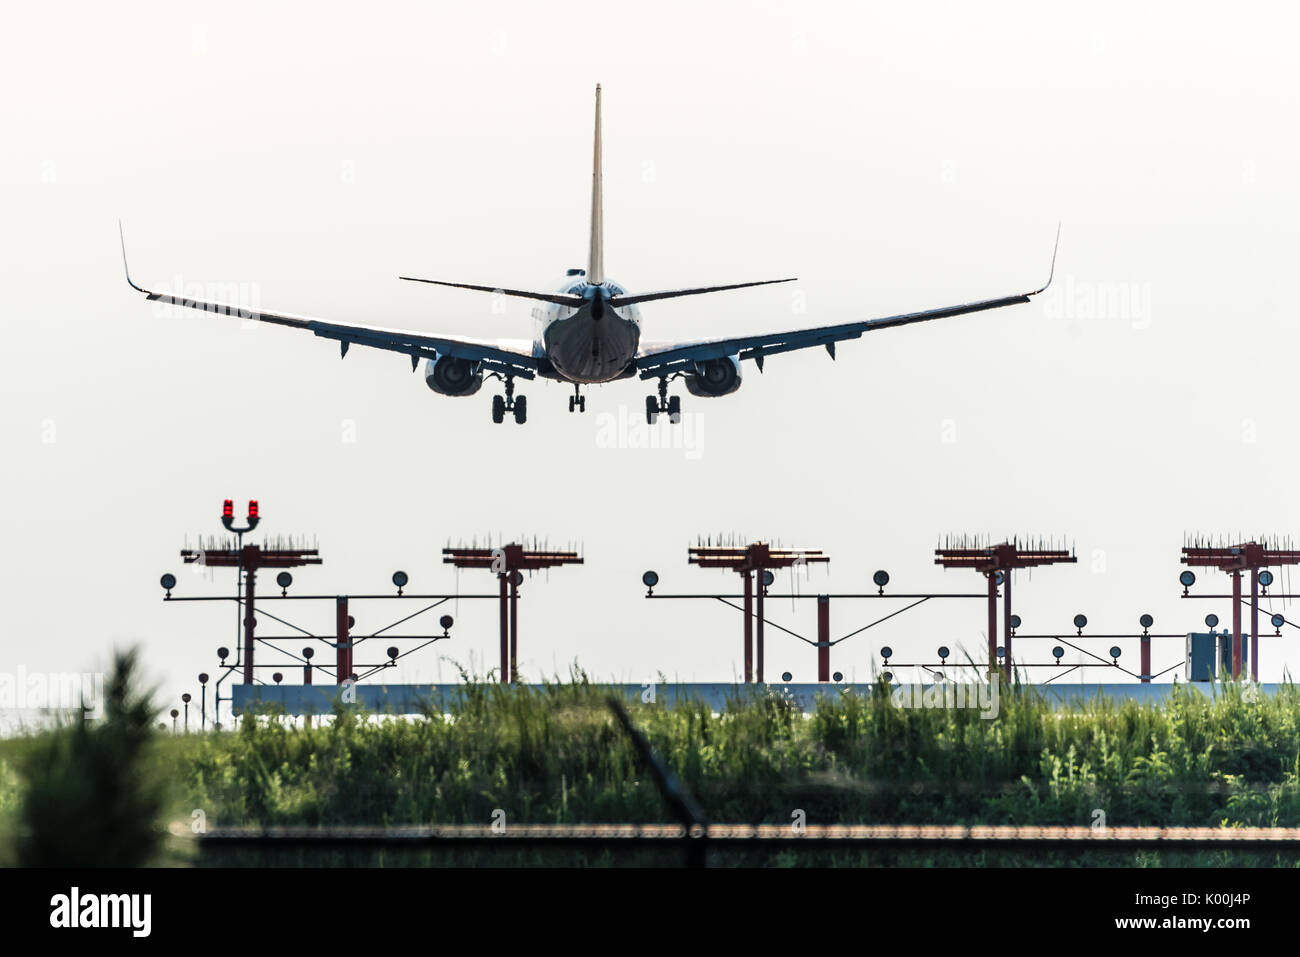 Delta Air Lines jet in descent for landing over the runway approach lights at Hartsfield-Jackson Atlanta International Airport in Atlanta, Georgia. - Stock Image